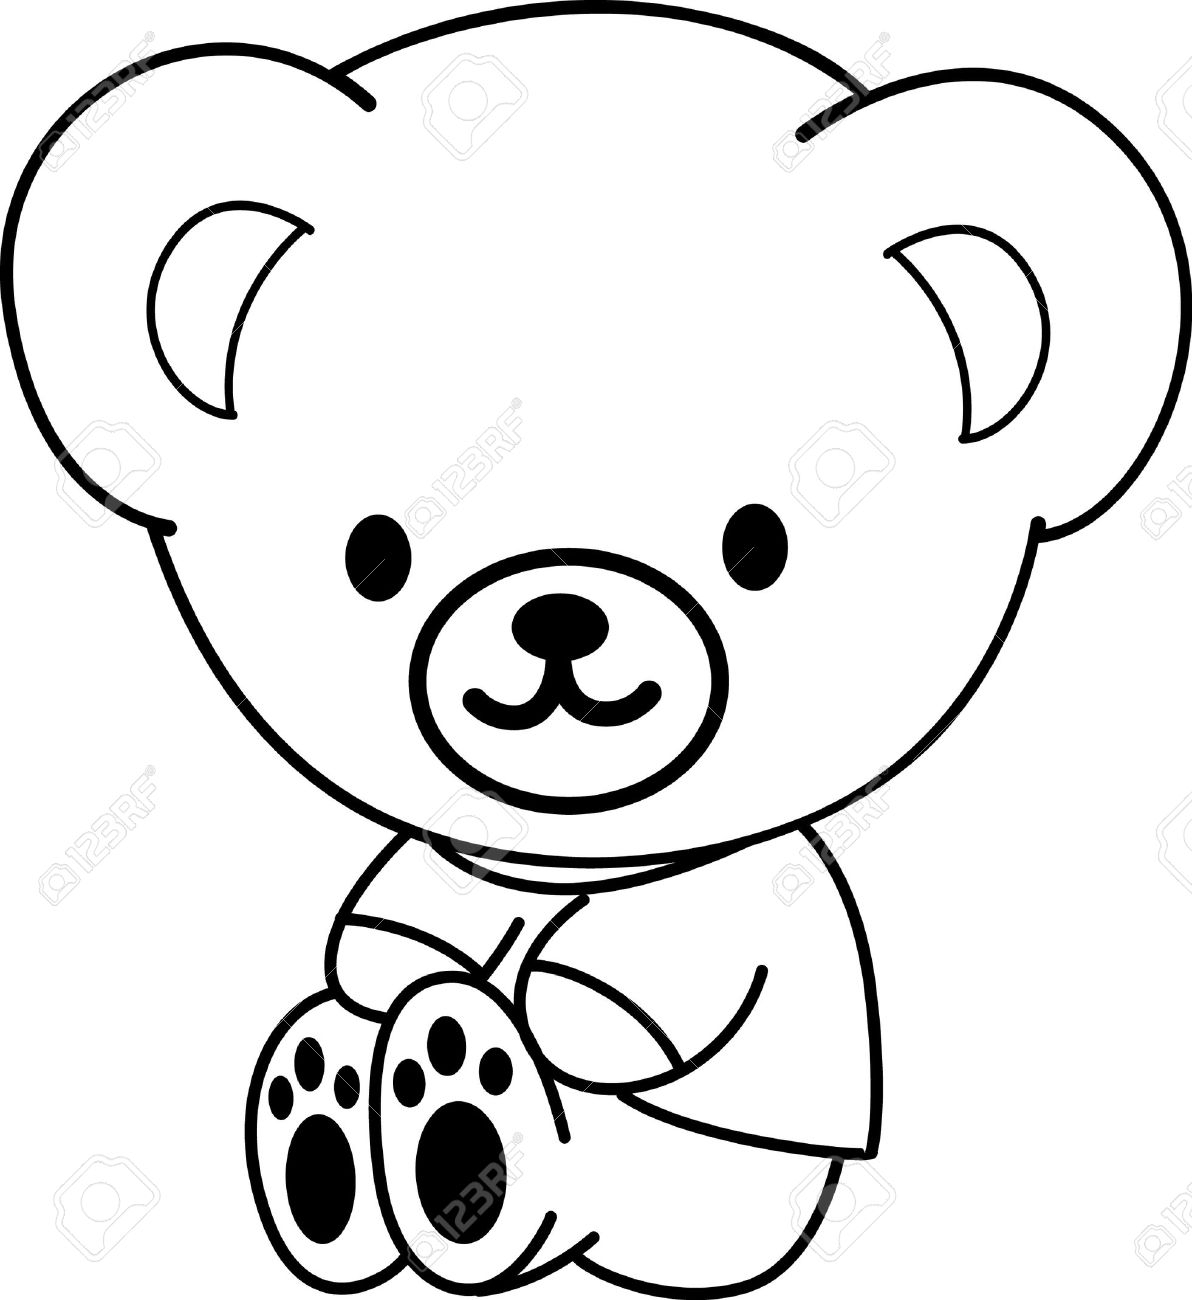 1192x1300 Cartoon Drawings Of Bears How To Draw A Cartoon Teddy Bear Kids